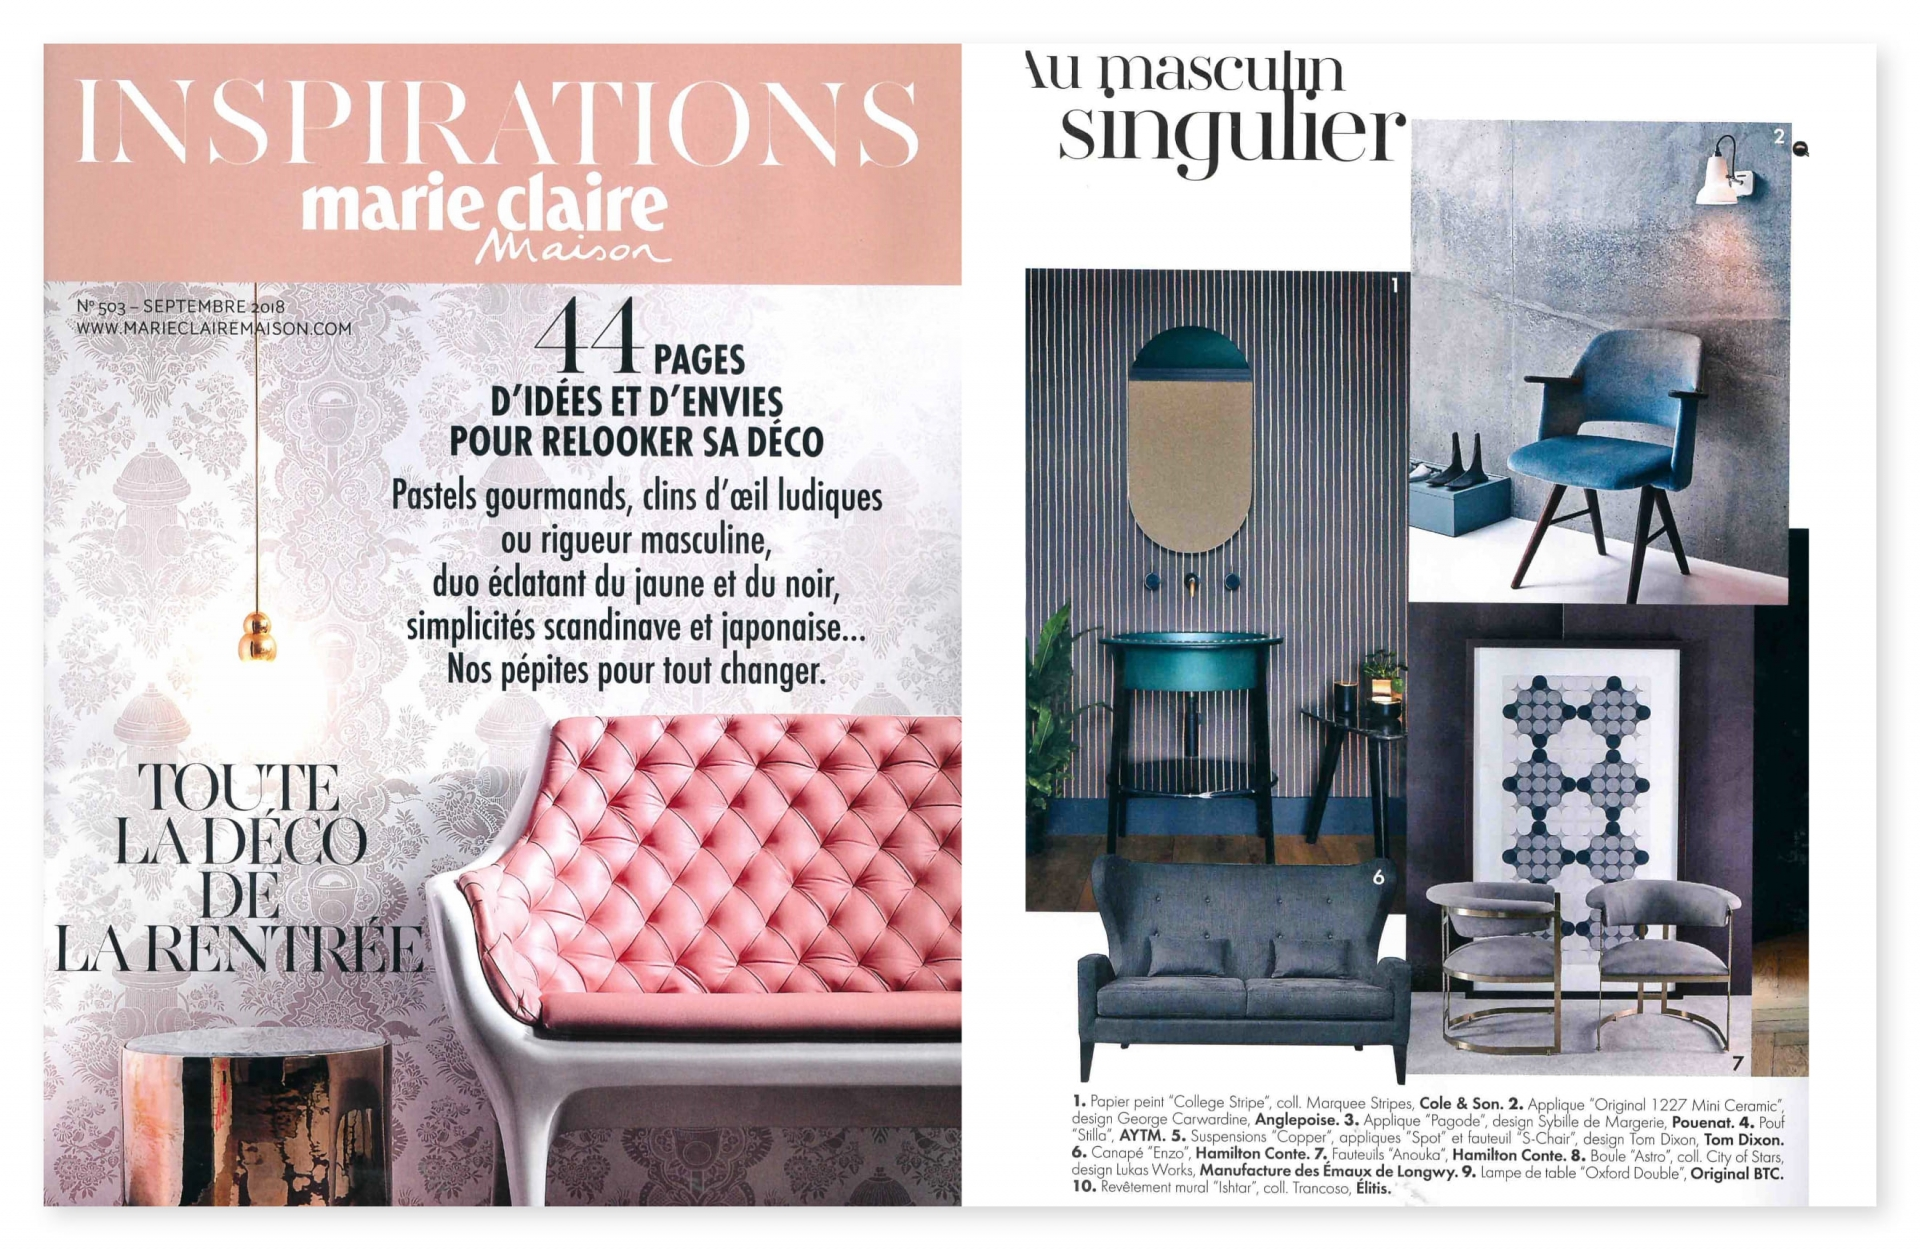 big en 552 hc press 2018 09 marie claire maison insp fr